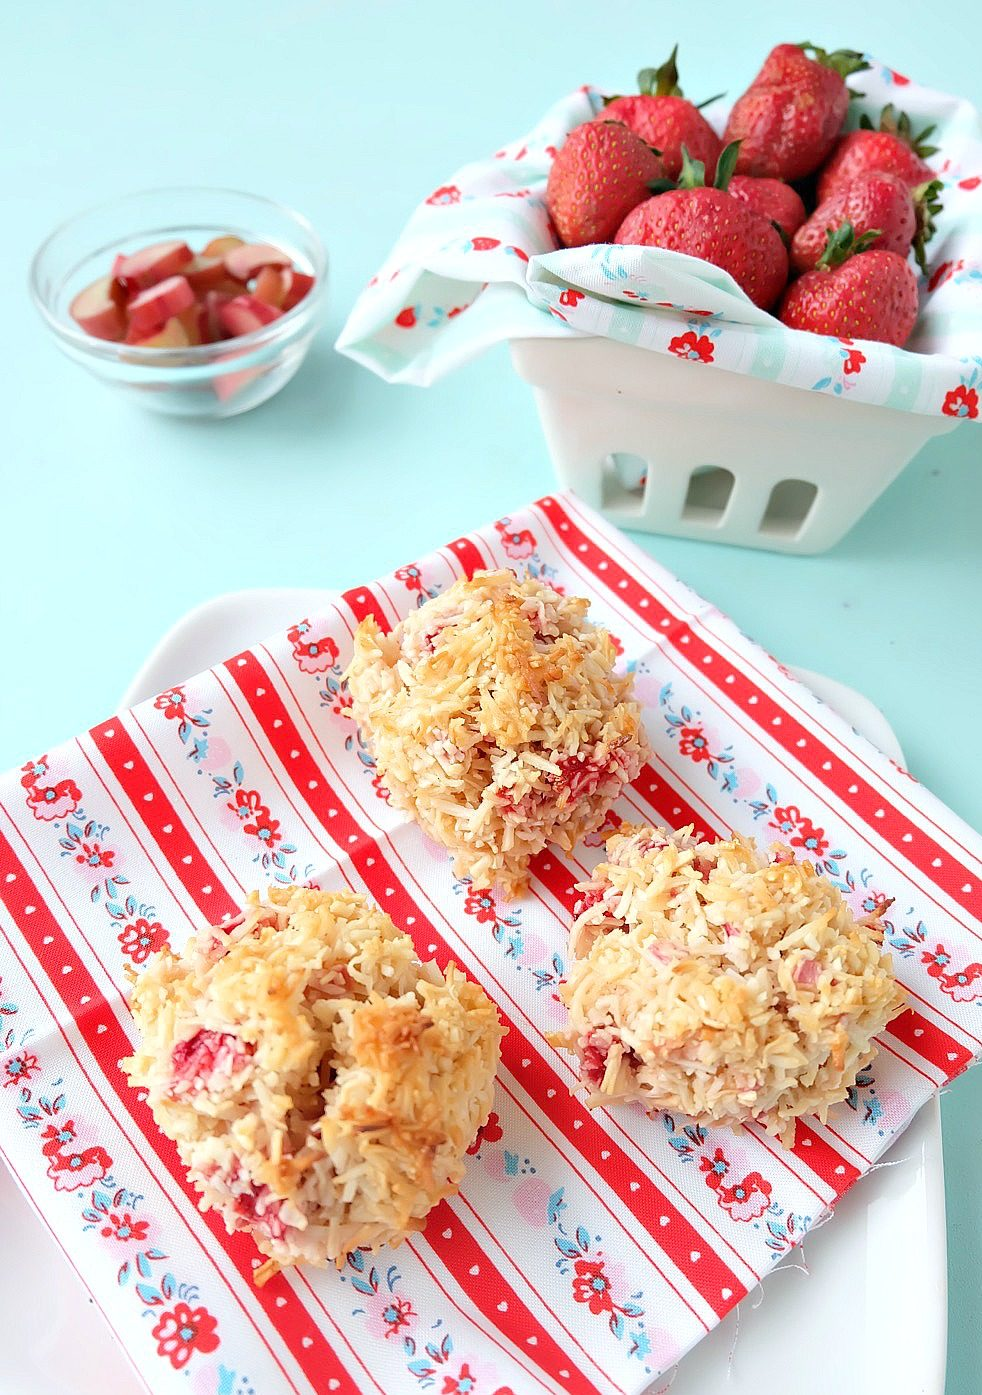 Strawberries and rhubarb come together in this delicious, easy to prepare, summer dessert idea! This Strawberry Rhubarb Coconut Macaroon Recipe is simple to make and is a perfect kids cooking recipe! Makes a great freezer dessert too, freeze extras and have cookies for months! #Baking #StrawberryRhubarb #Coconut #Macaroon #Dessert